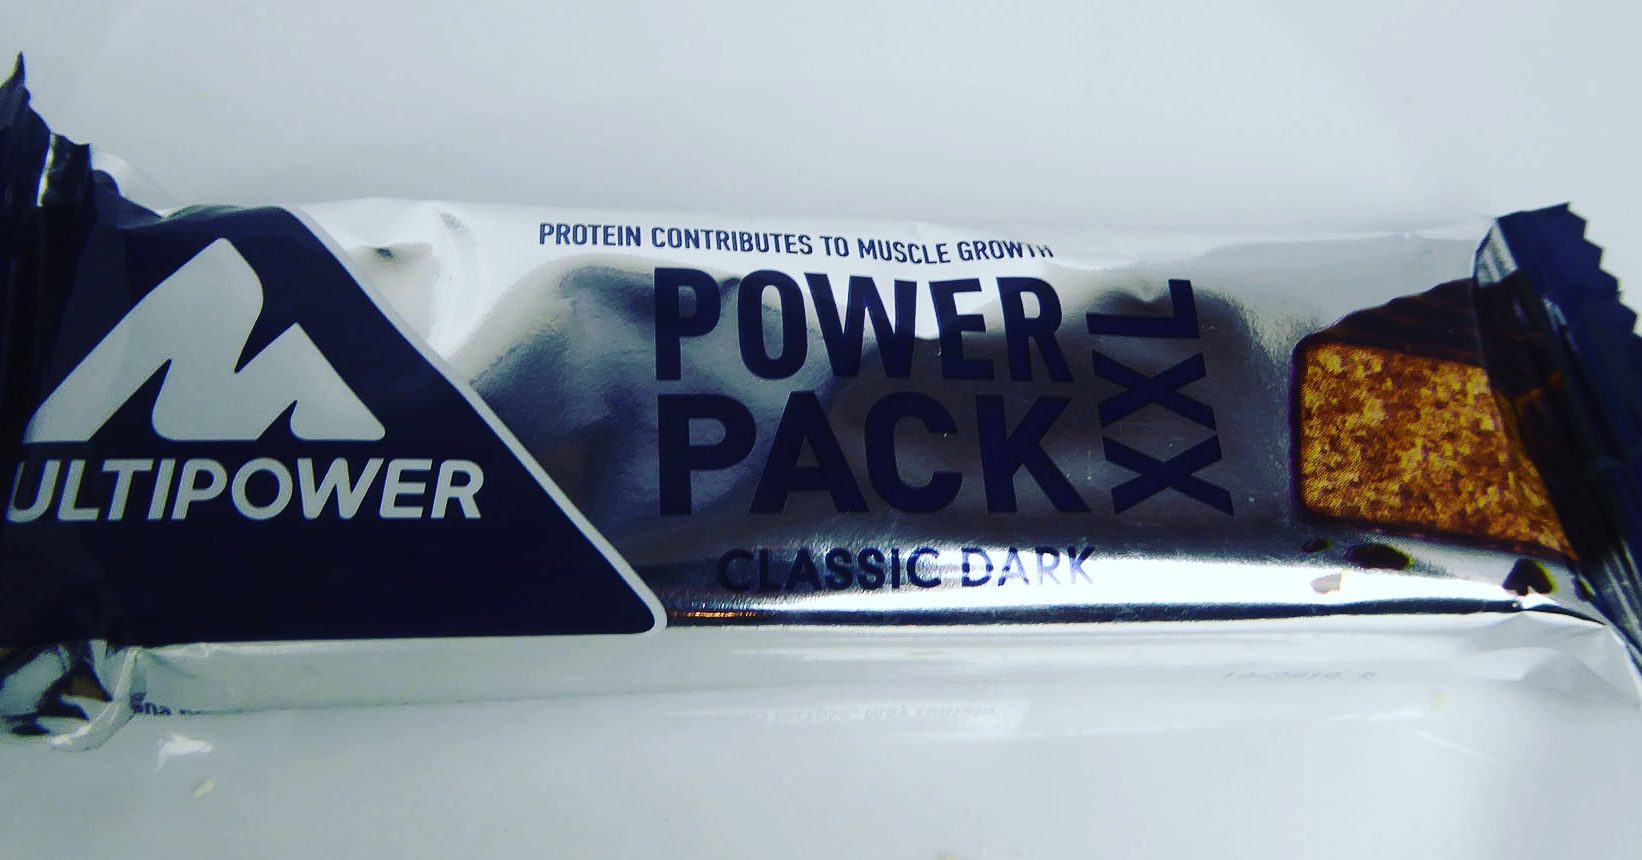 Multipower Power Pack XXL Classic Dark Protein Bar